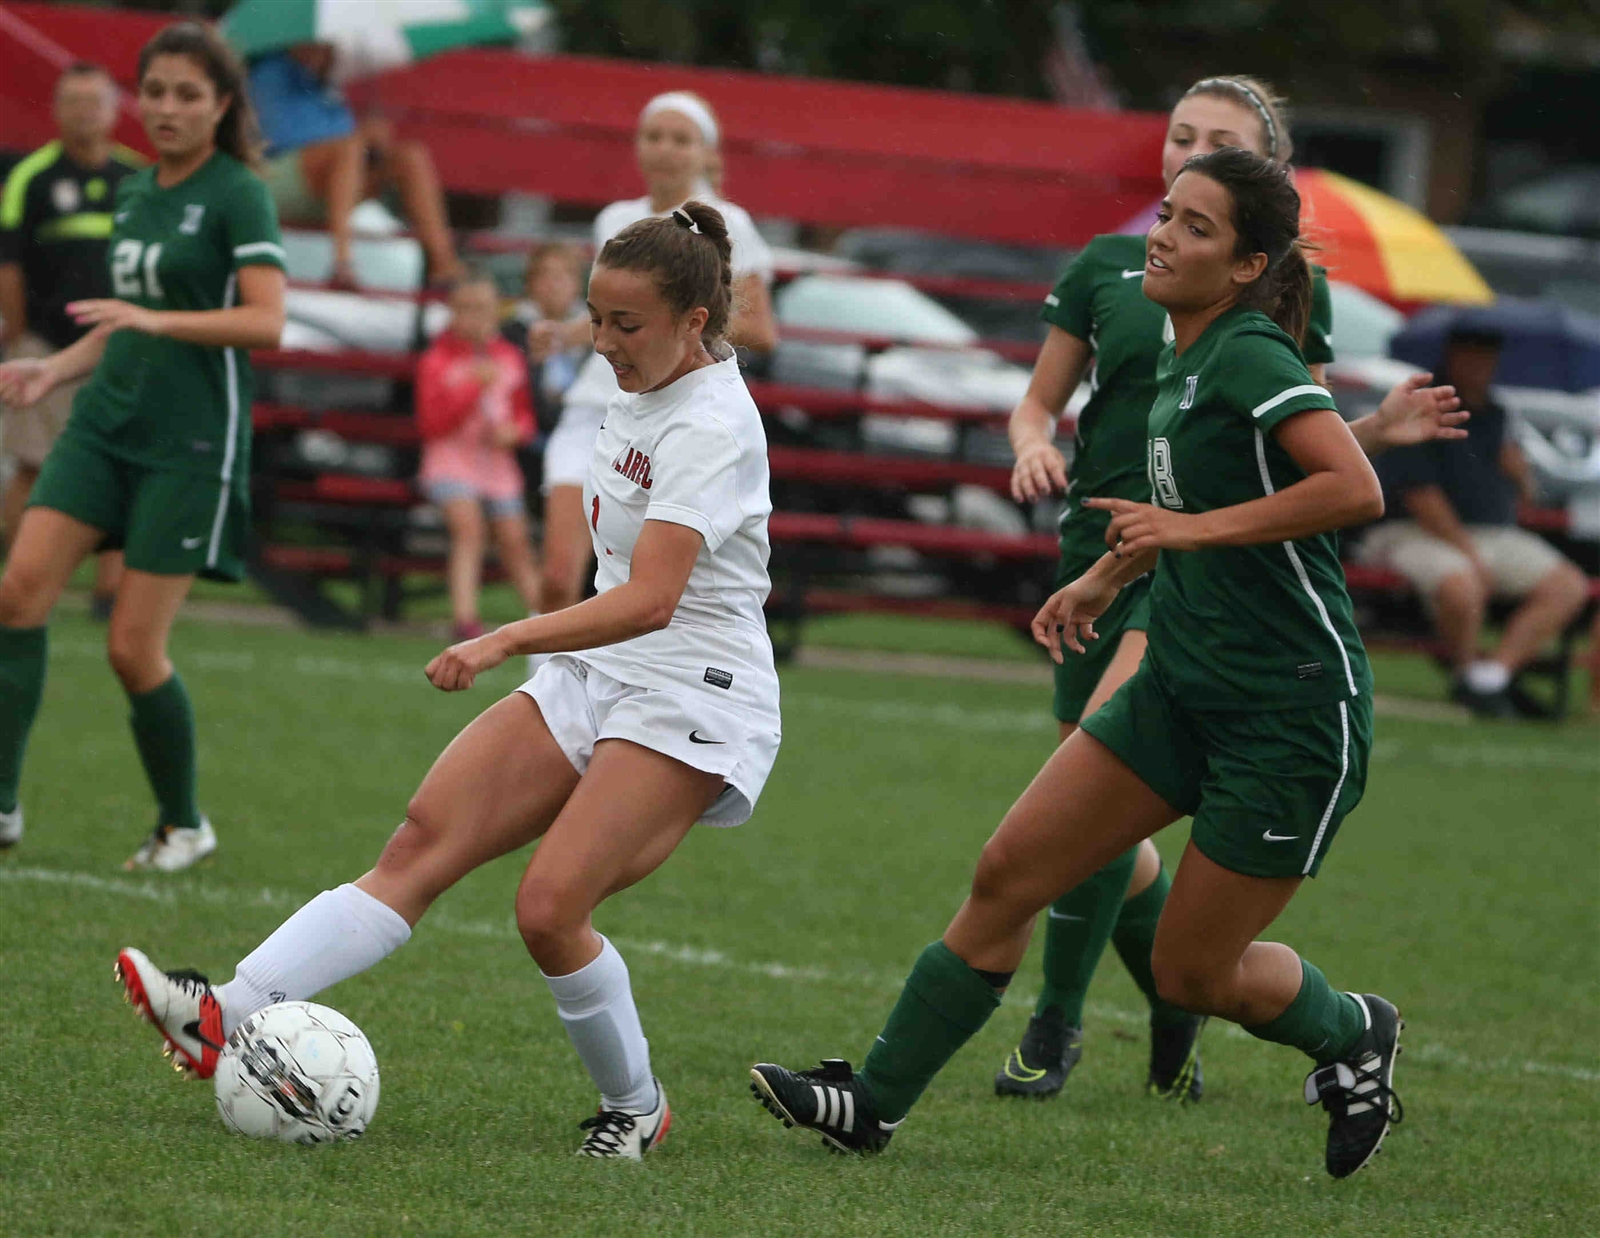 Clarence's Riley Bowers battles Emma Biachi for the ball